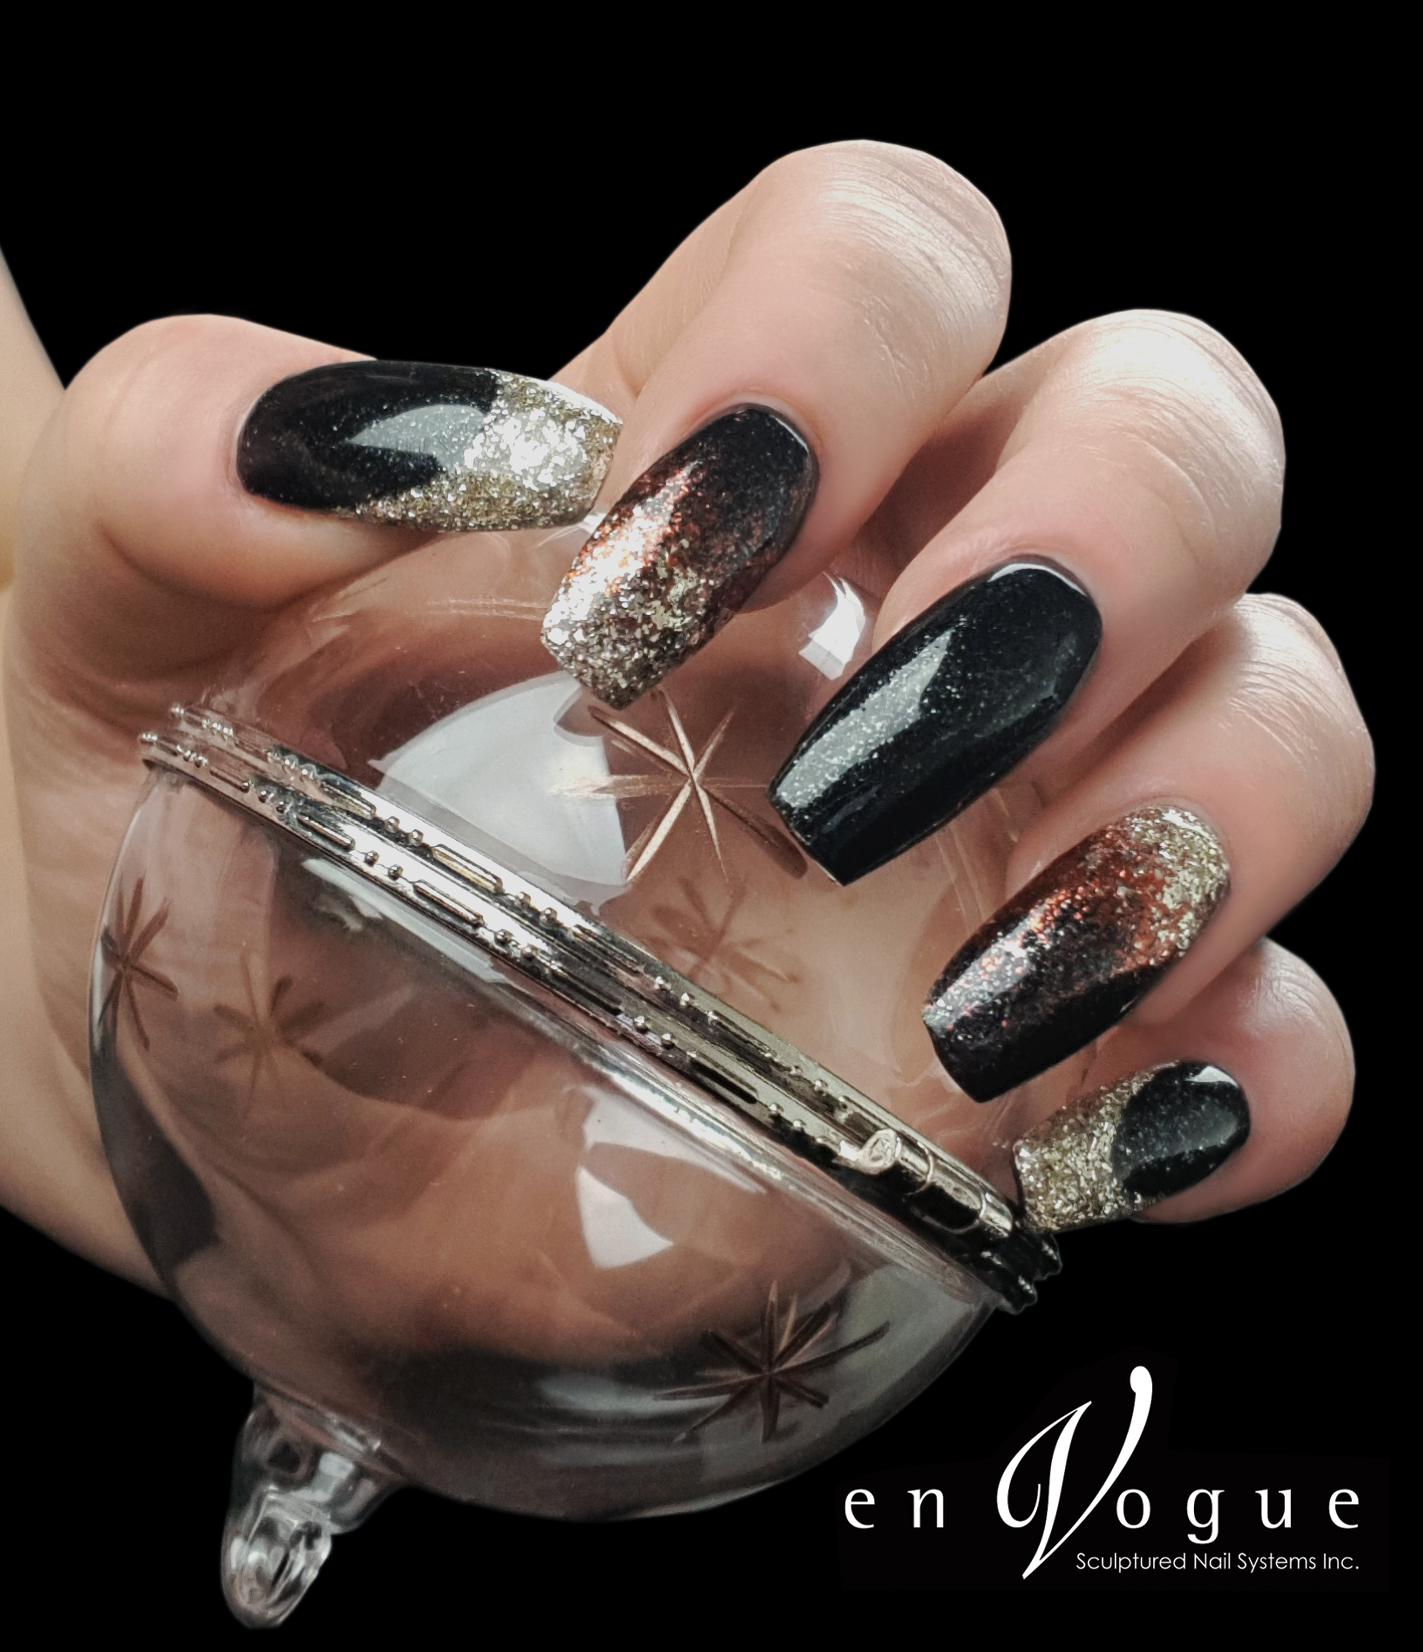 envoguesimply-nail-gel-uvled-glittergel.-frontpage.jpg